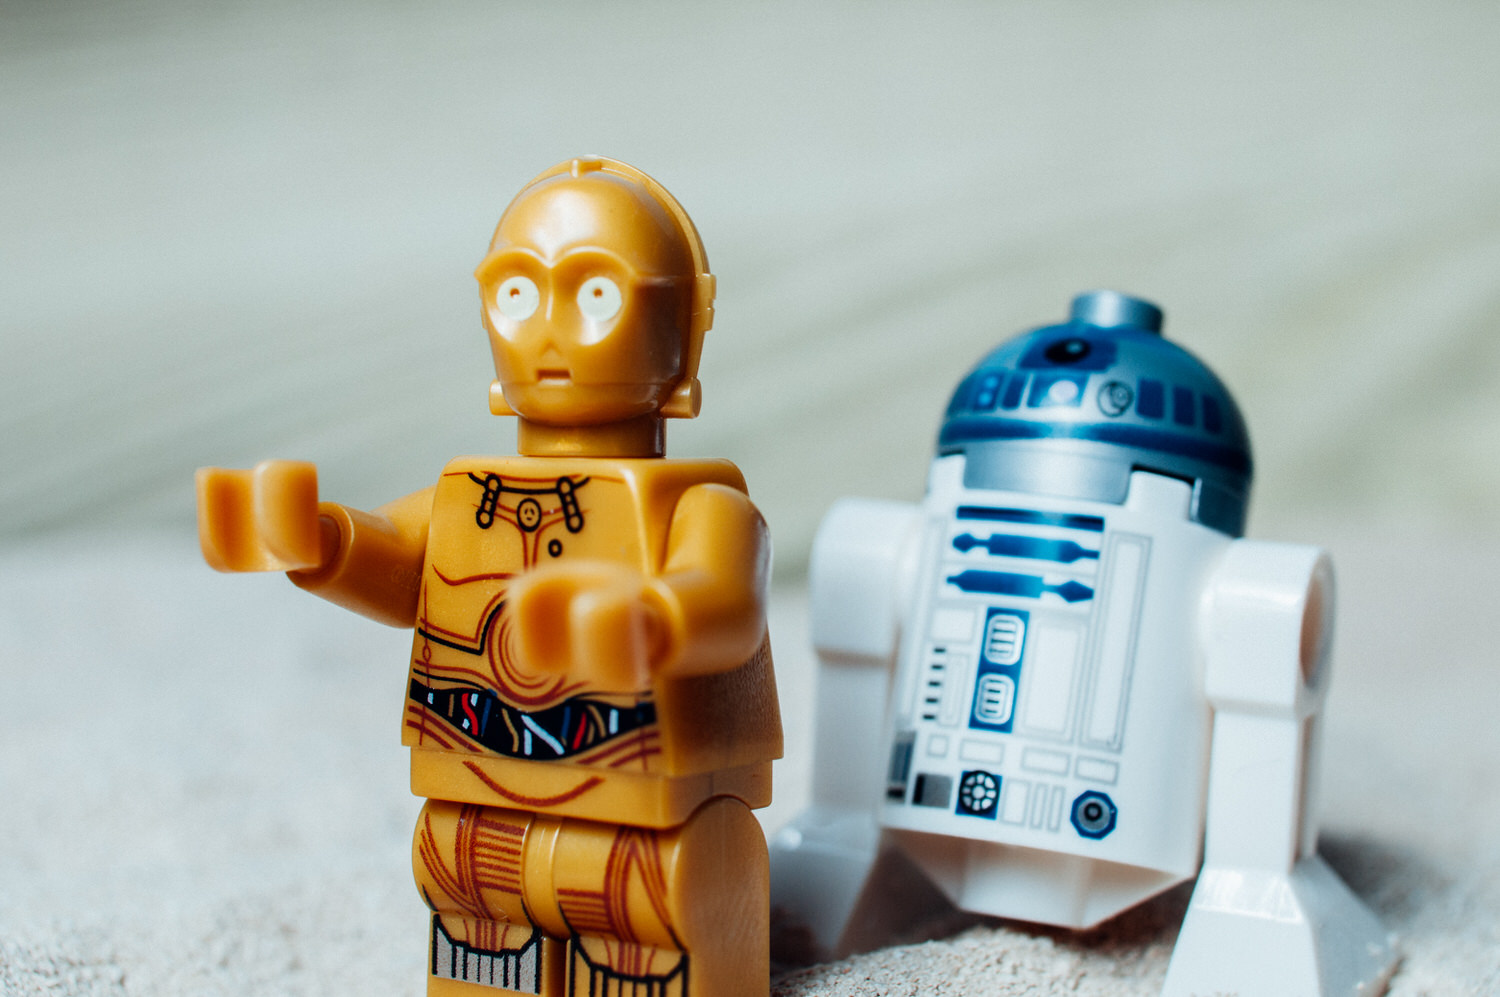 C3PO+and+R2D2+on+Tatooine-23743076399.jpg